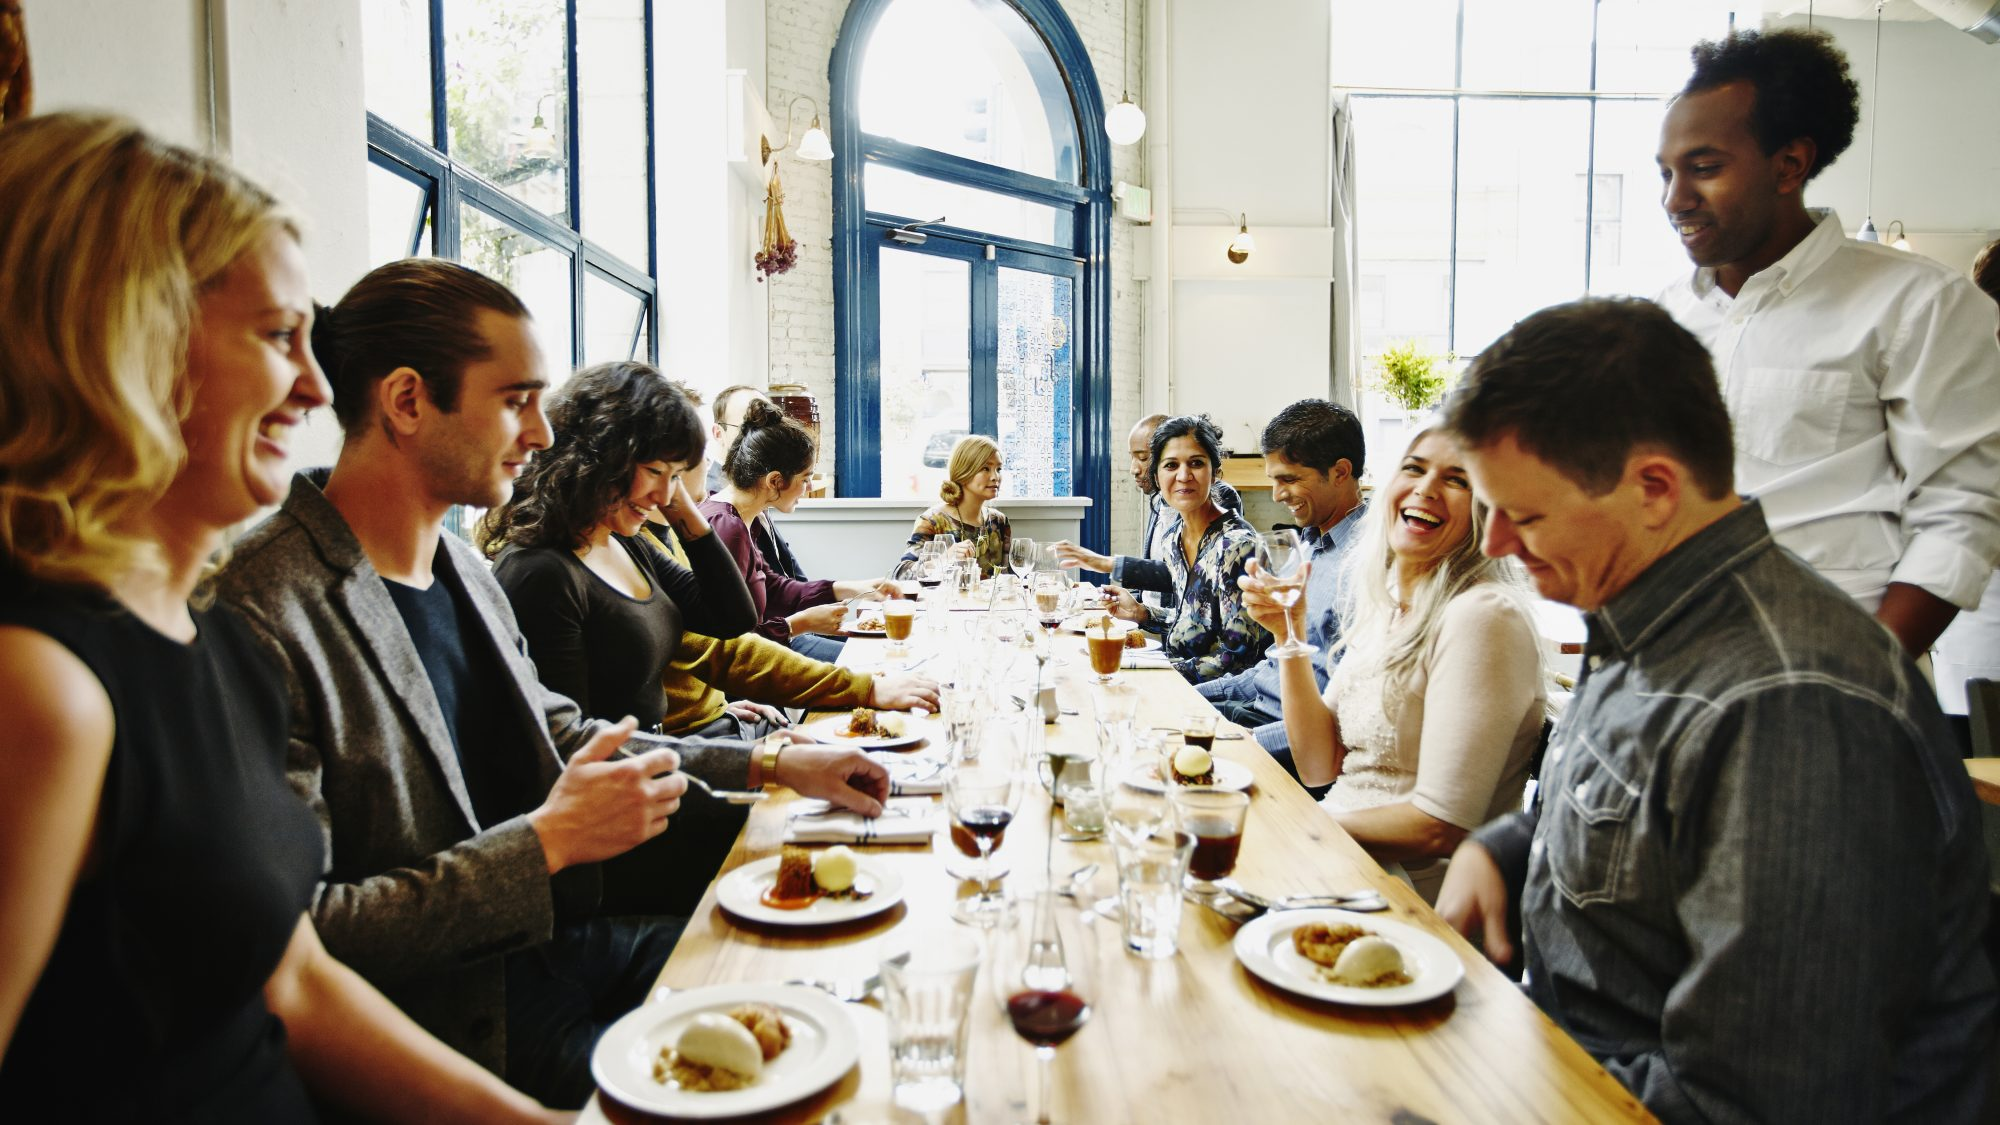 What You Should and Shouldn't Do When You Go Out to Dinner with a Big Group